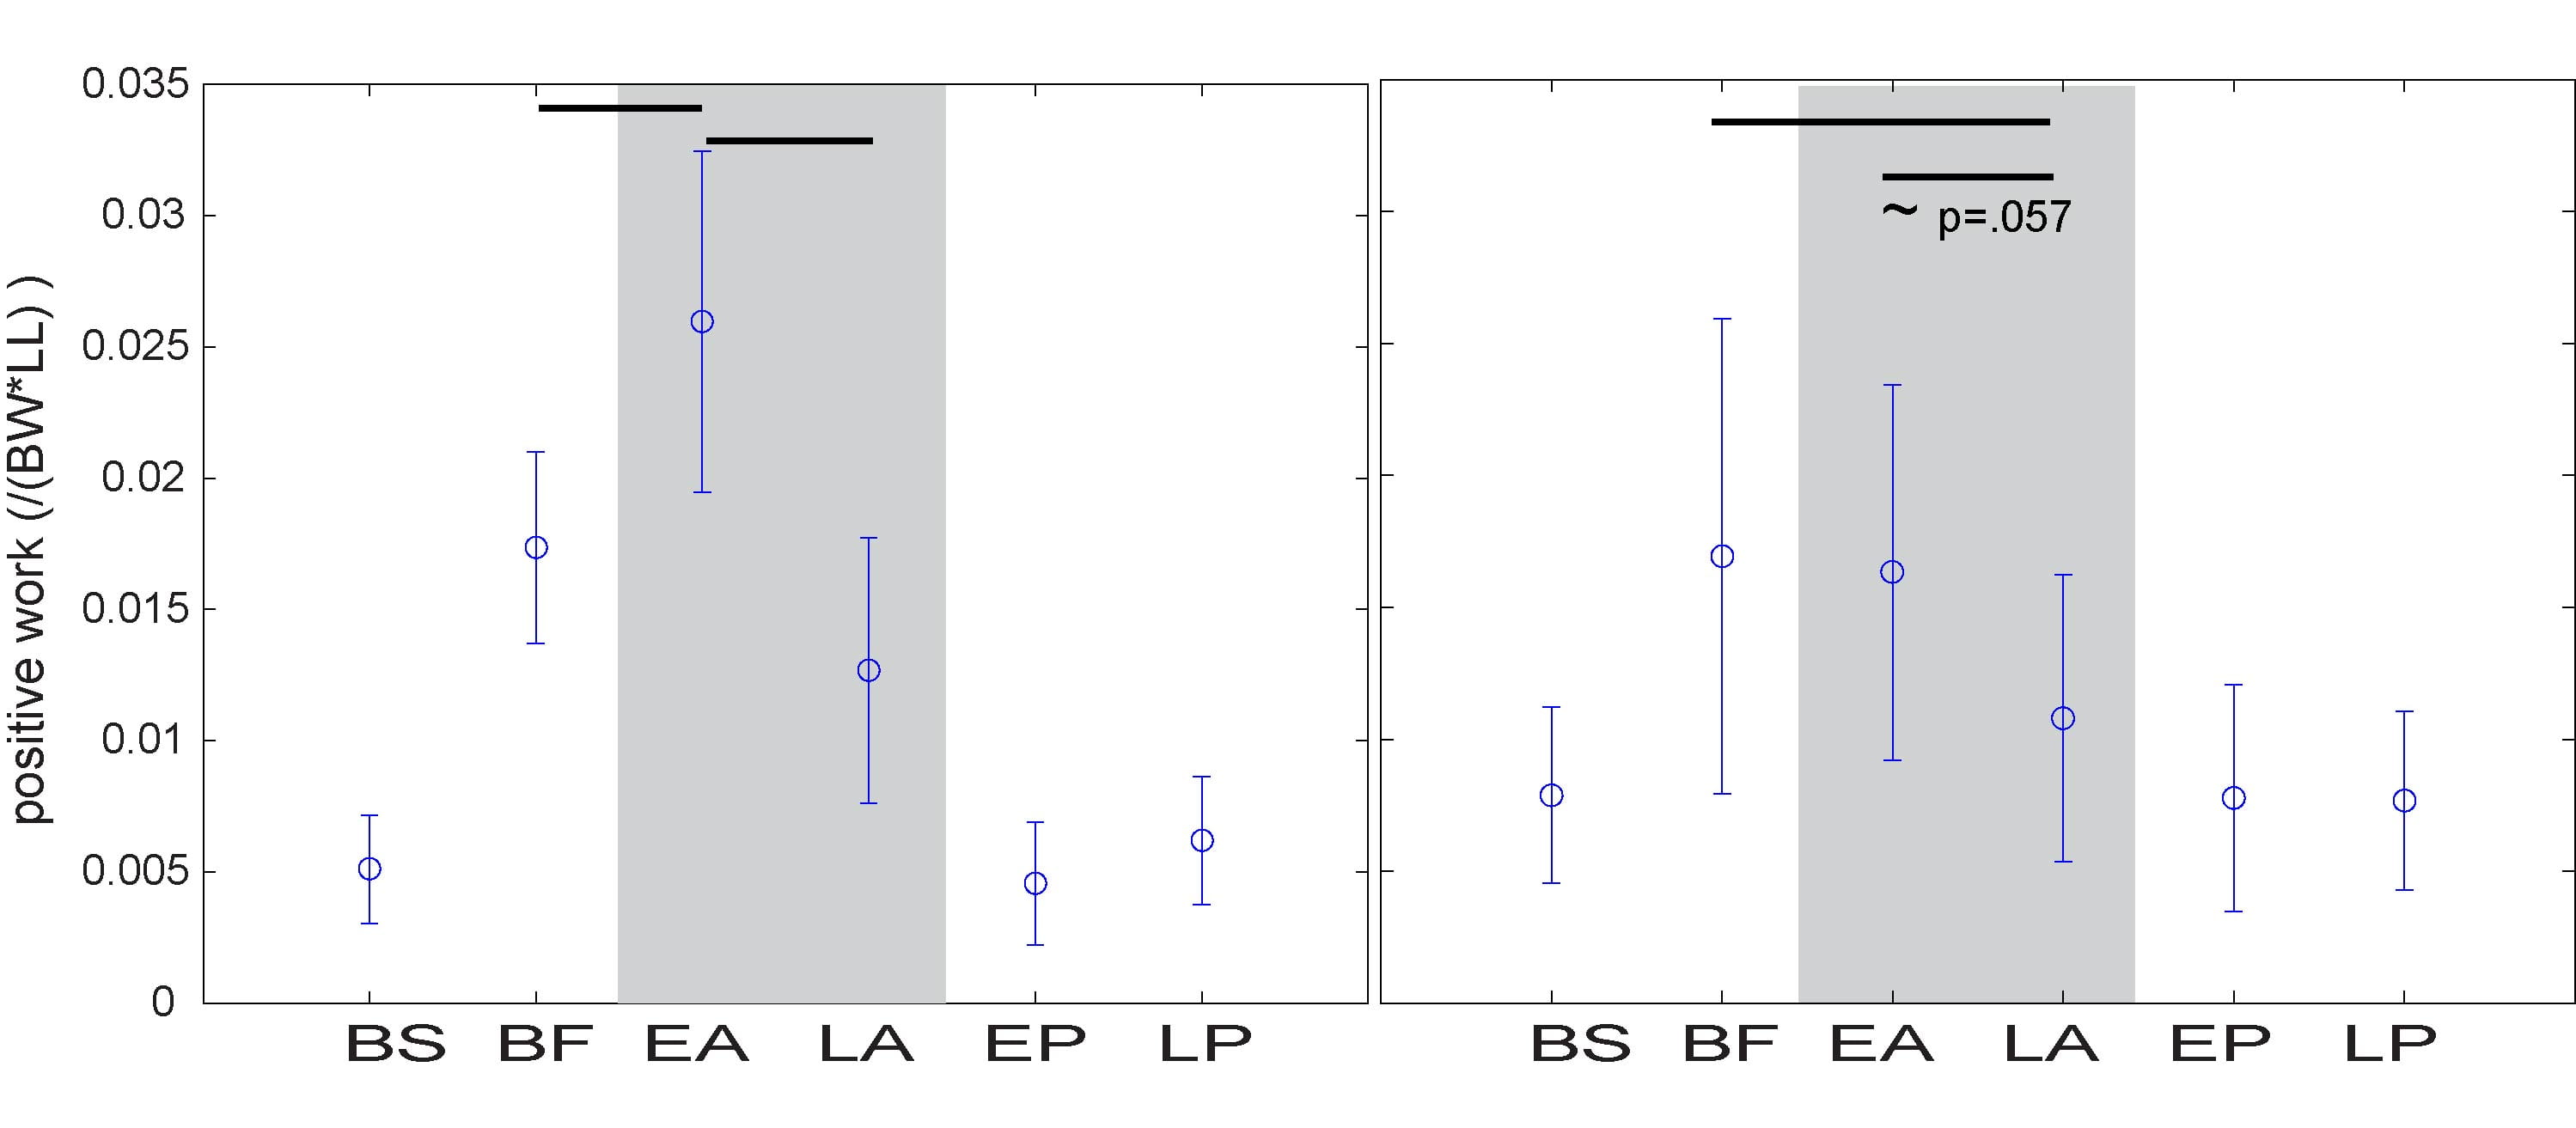 Figure 2. Work done by the fast leg during pendular phase decrease for both able-bodied controls (statistically significant decrease, A) and amputees (decreasing trend, B). Horizontal bars indicate significant difference or difference approaching significance (which includes p-value) between each end of the bar. Abbreviations: BS - slow baseline; BF - fast baseline; EA and LA, early and late adaptation; EP and LP, early and late post-adaptation; LL - leg length; BW - body weight